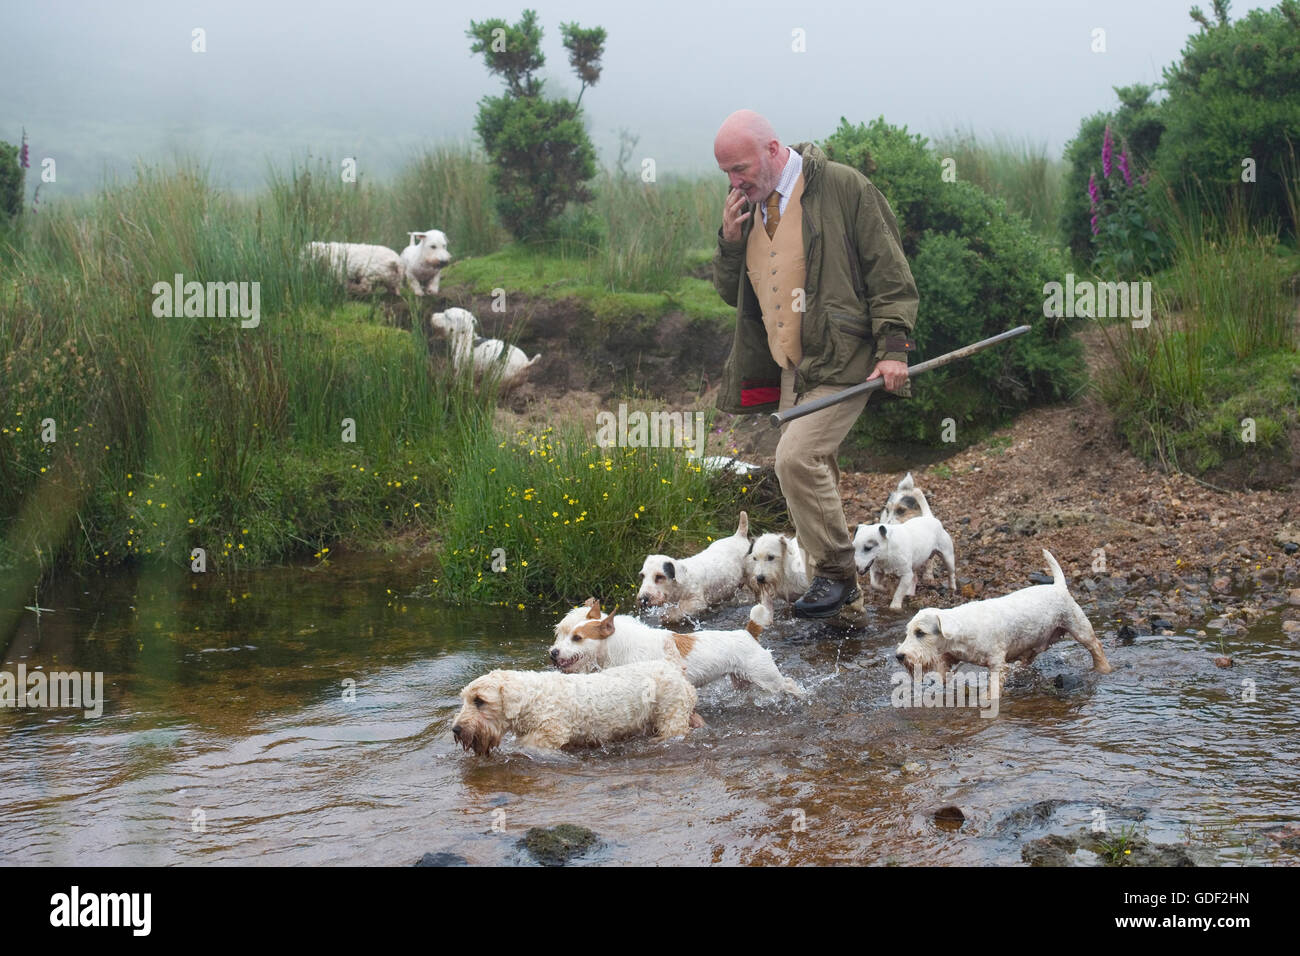 man hunting with sealyhams - Stock Image